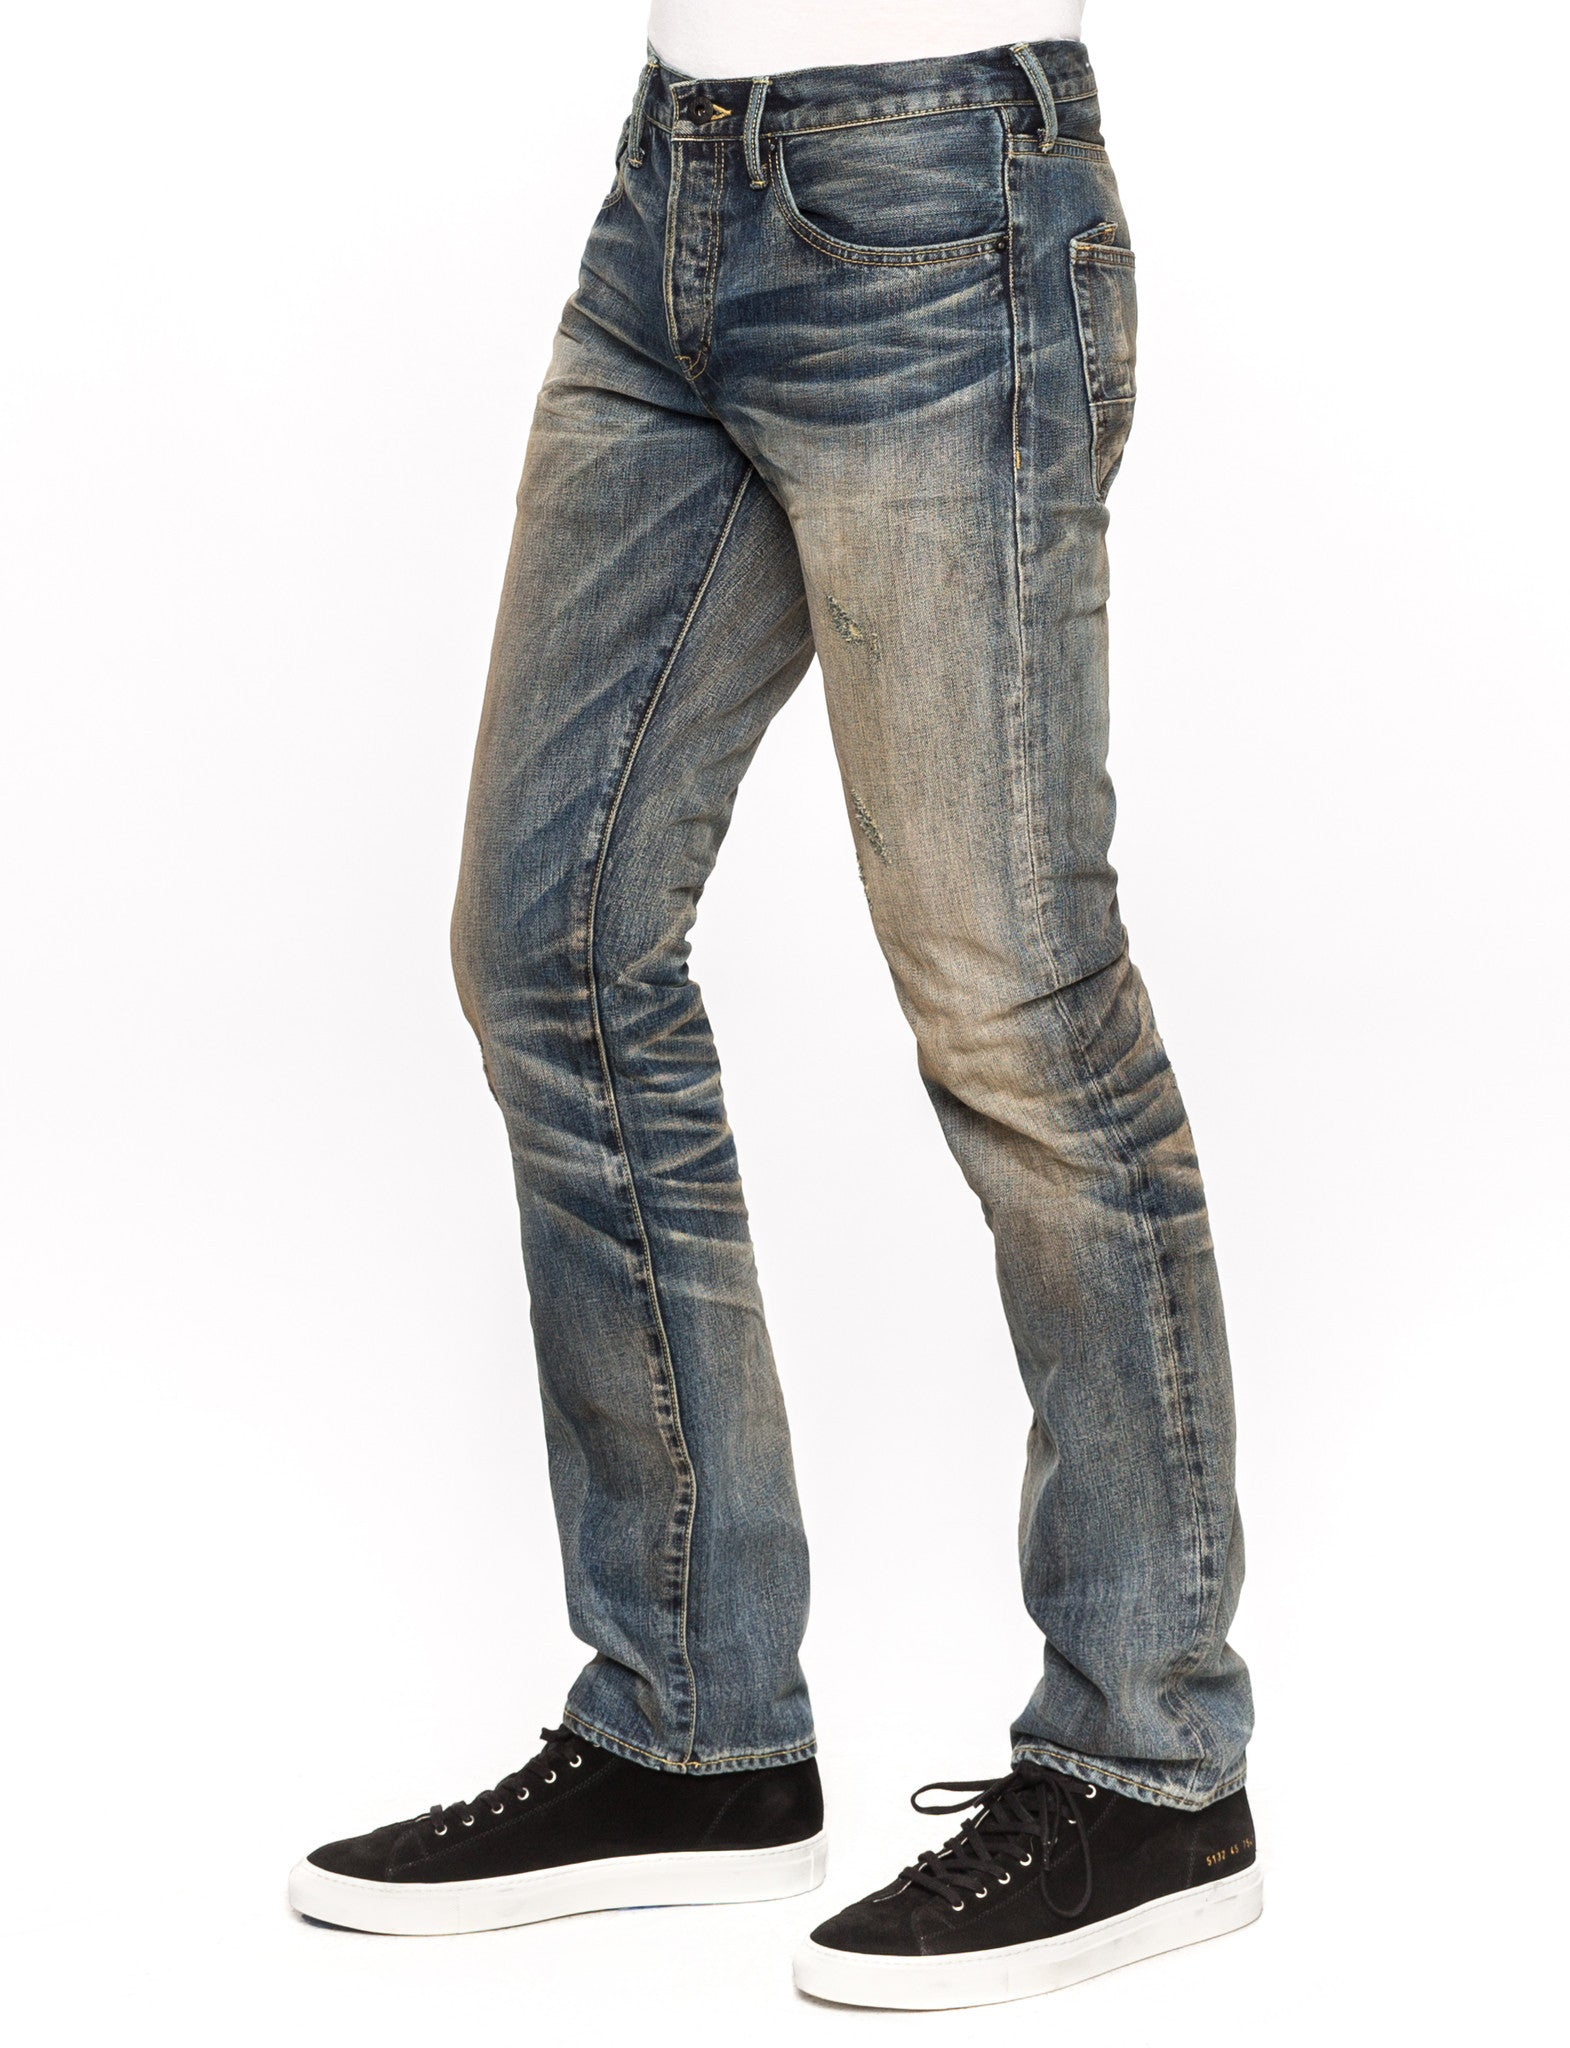 Barracuda - Enter - Jeans - Prps